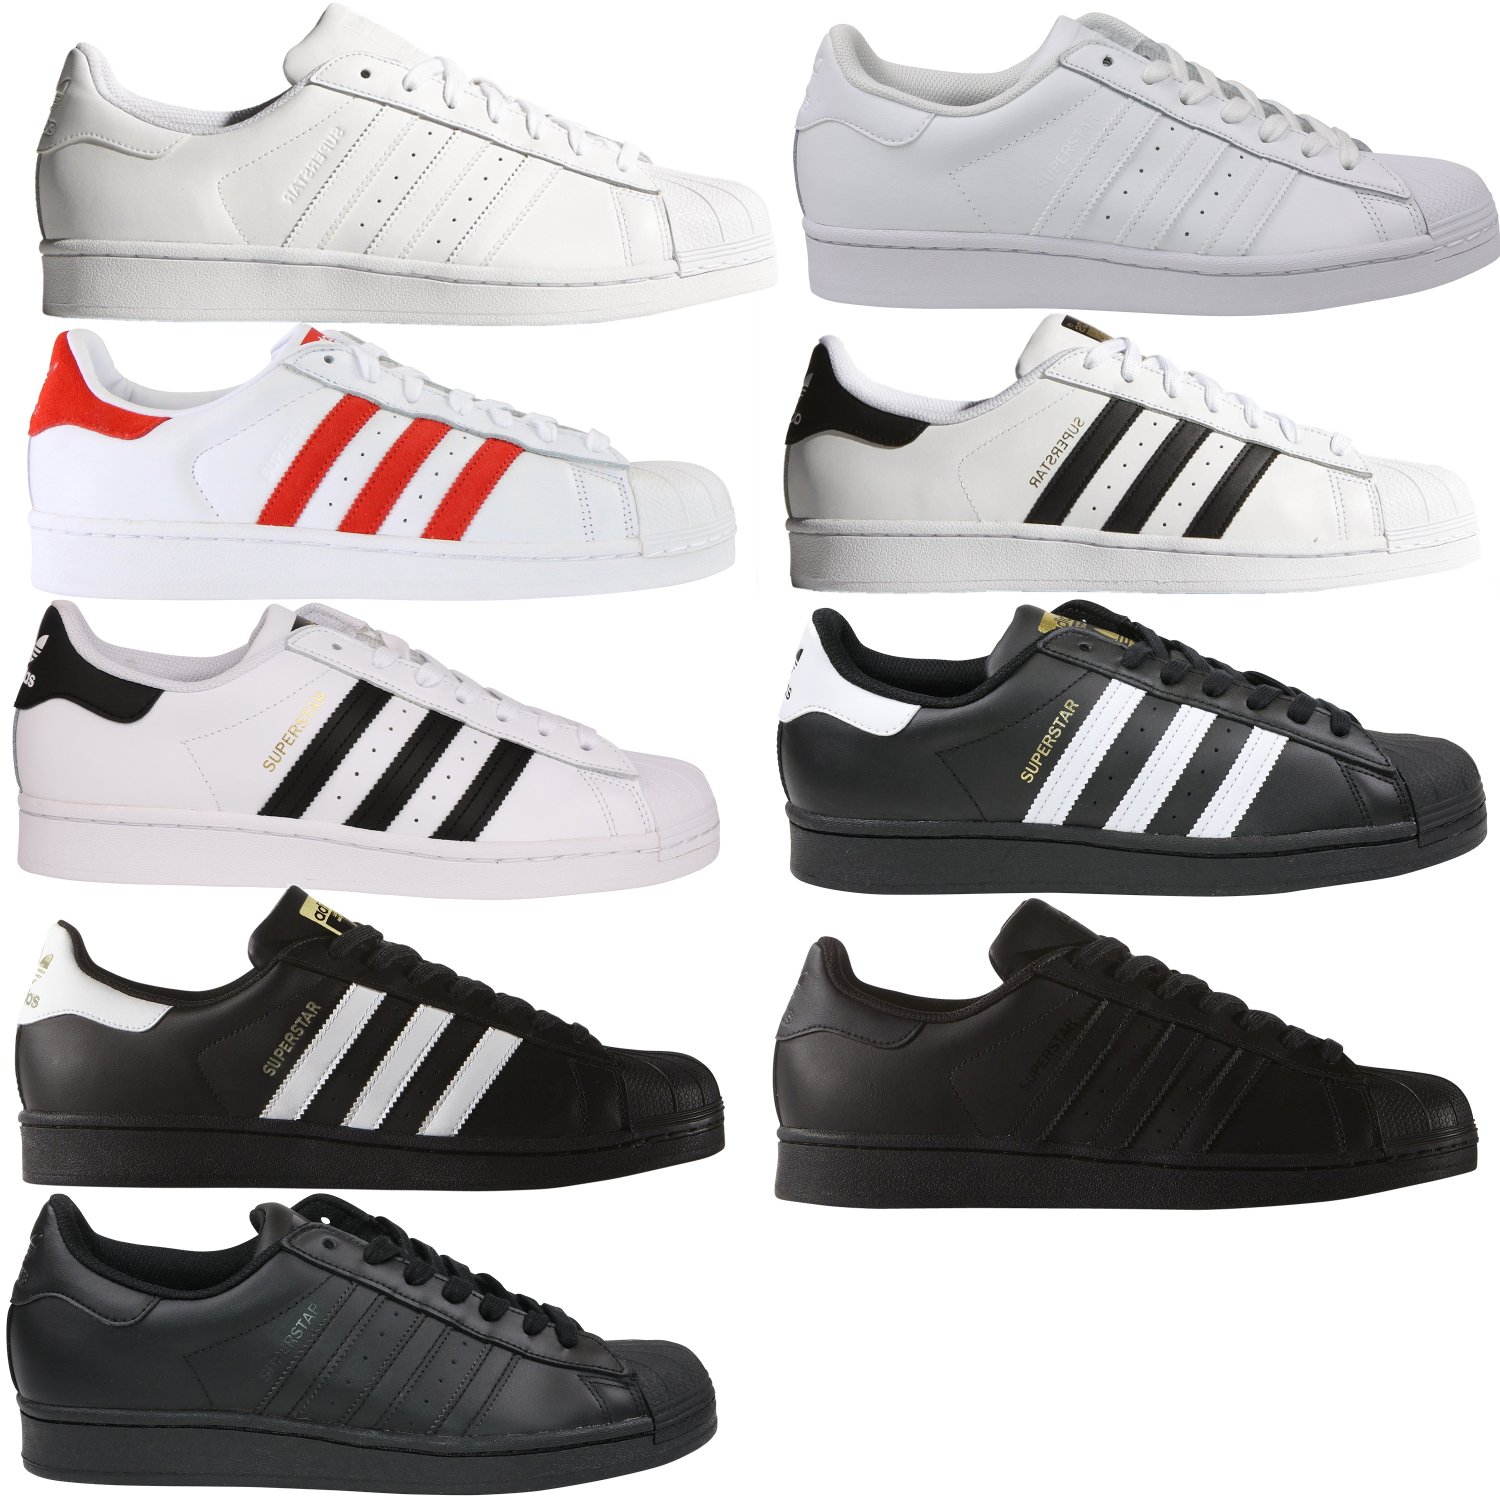 Details zu Adidas Originals Superstar Foundation Schuhe Sneaker Turnschuhe Herren Damen